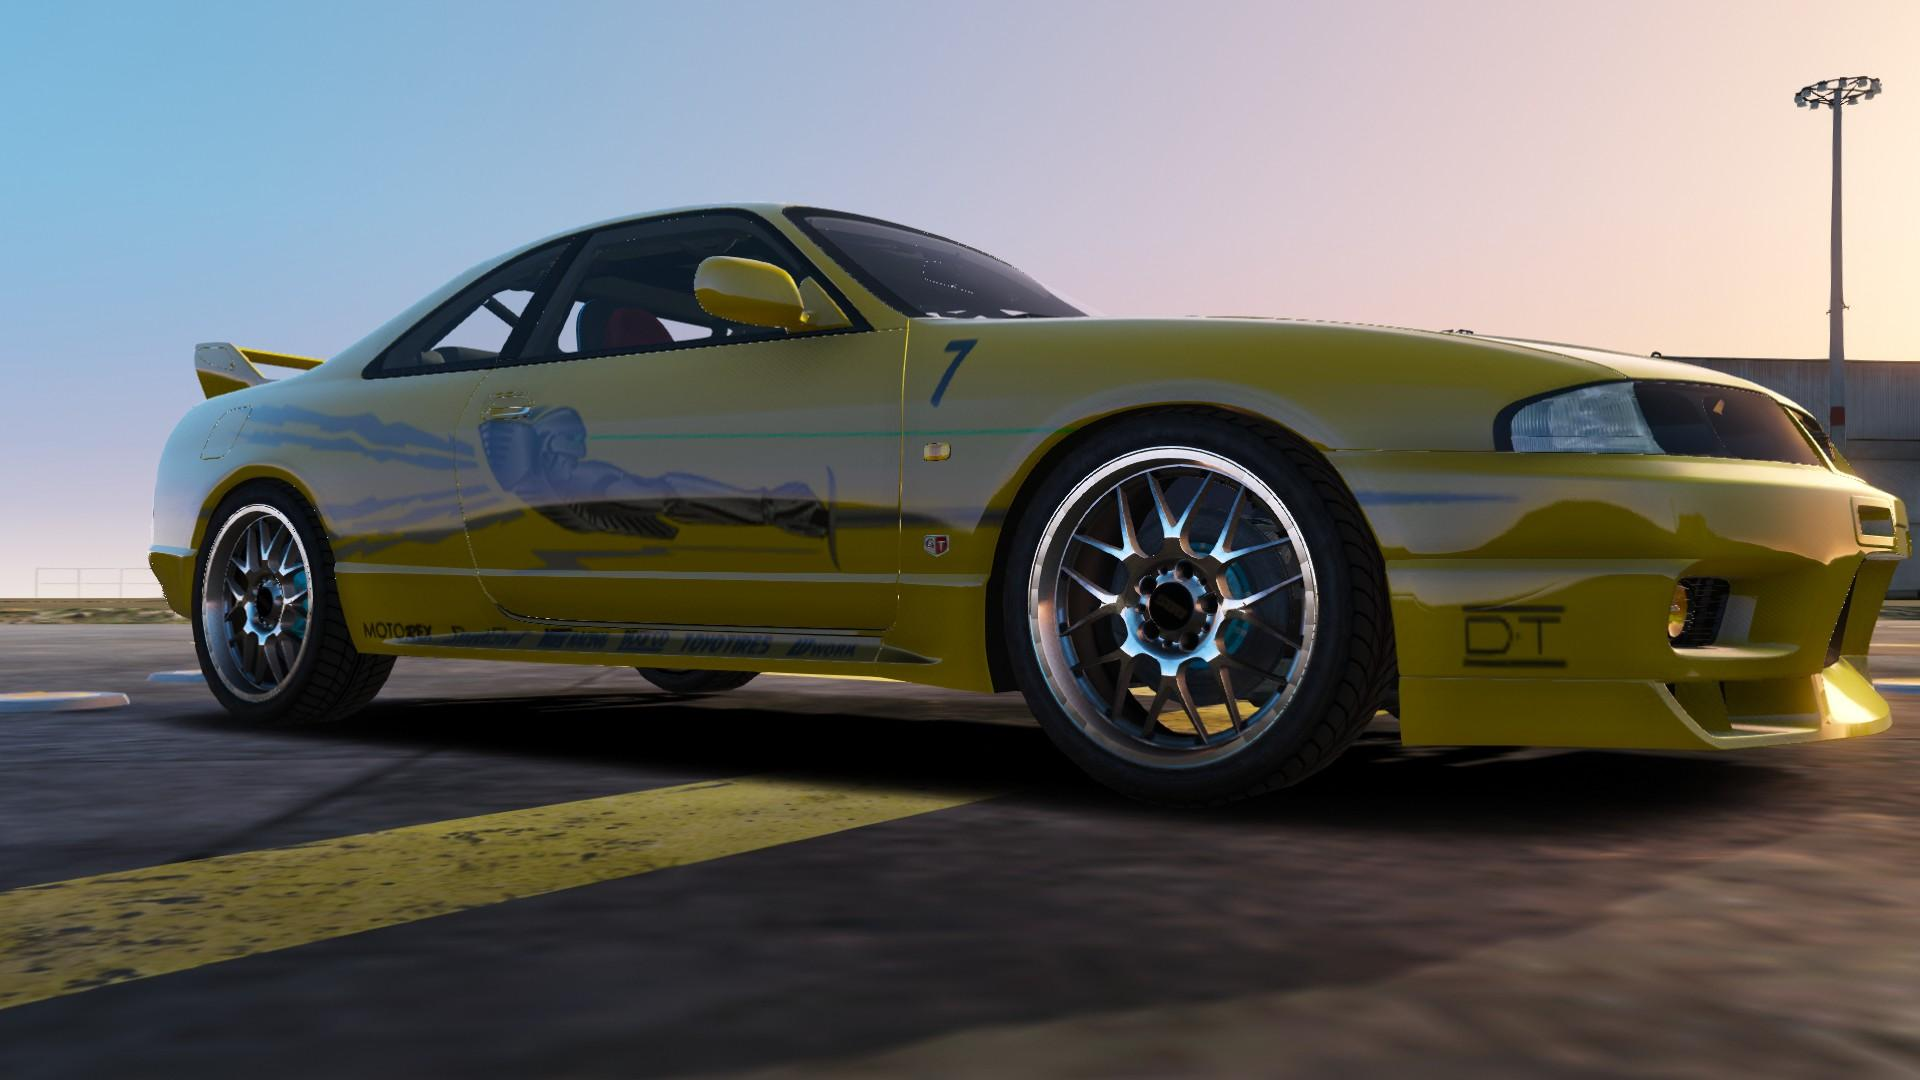 Leon's Nissan R33 - The Fast and the Furious - GTA5-Mods.com